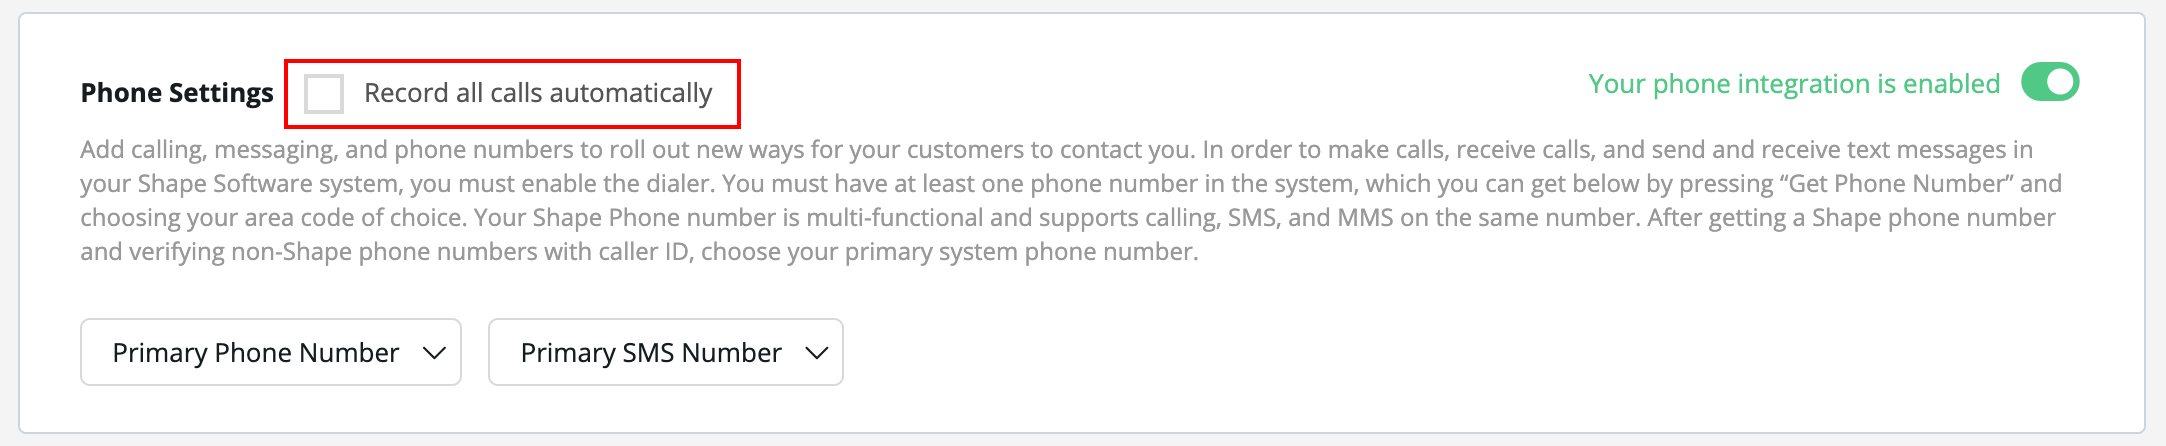 Recording Options:  On the popup, users can choose to start recording calls. However, if you choose to record all calls automatically, please select this check mark in the call settings. Please see disclaimers below regarding call recording.